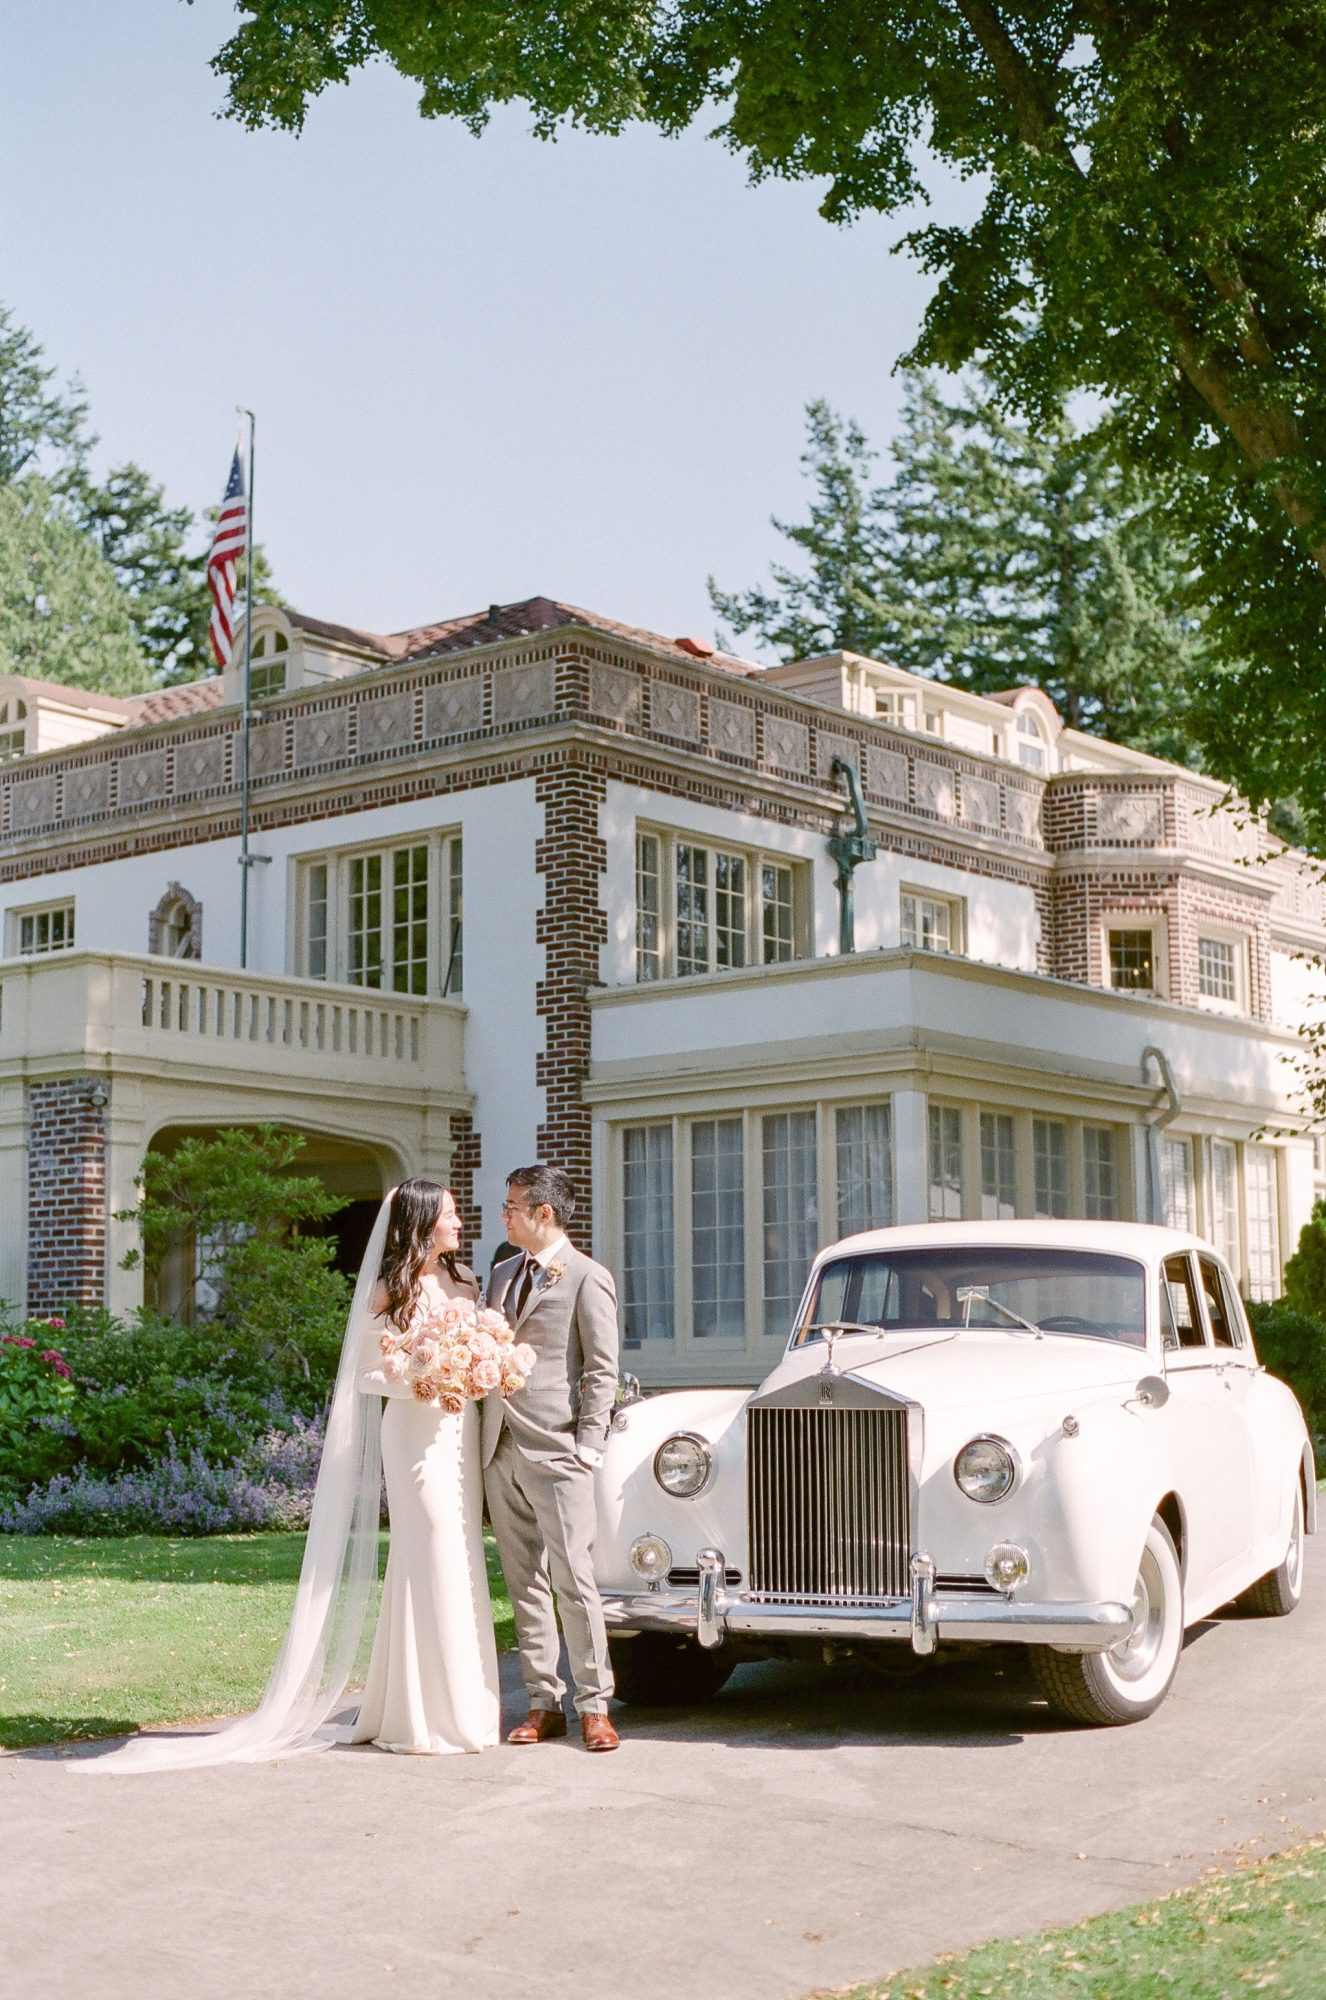 evelyn sam wedding pose in front of Rolls-Royce